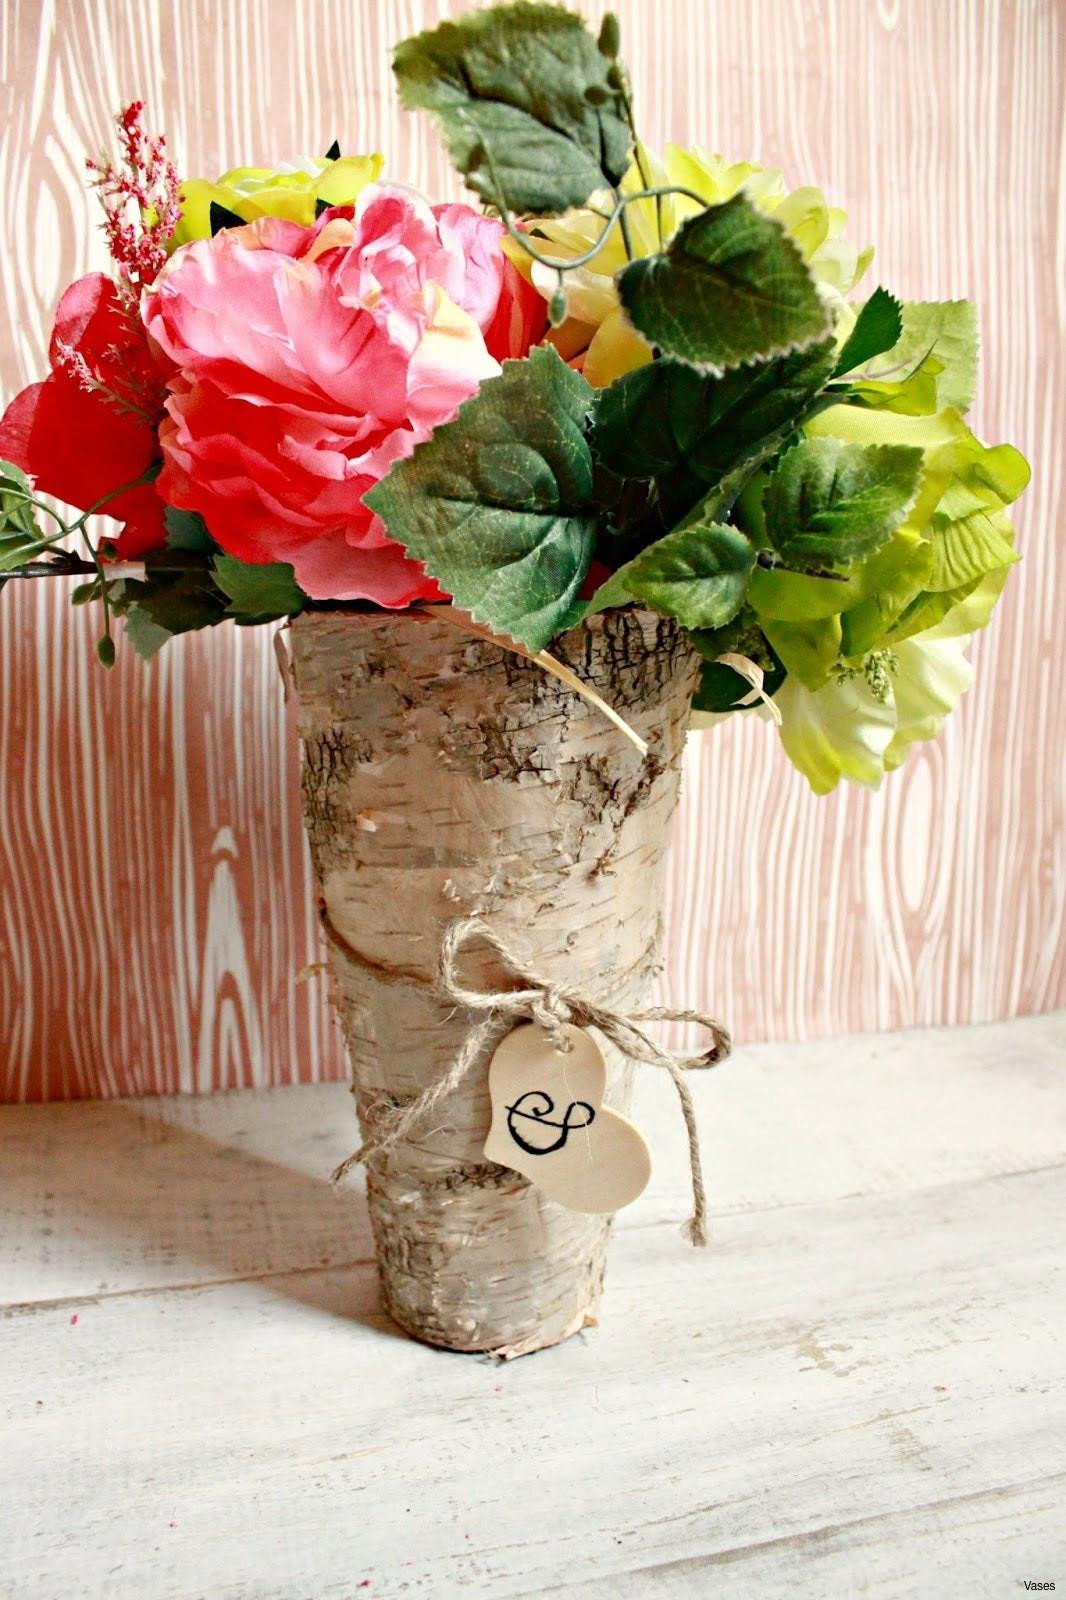 diy glass vase ideas of diy wedding ideas on a budget fresh flowers and decorations for for diy wedding ideas on a budget fresh flowers and decorations for weddings h vases diy wood